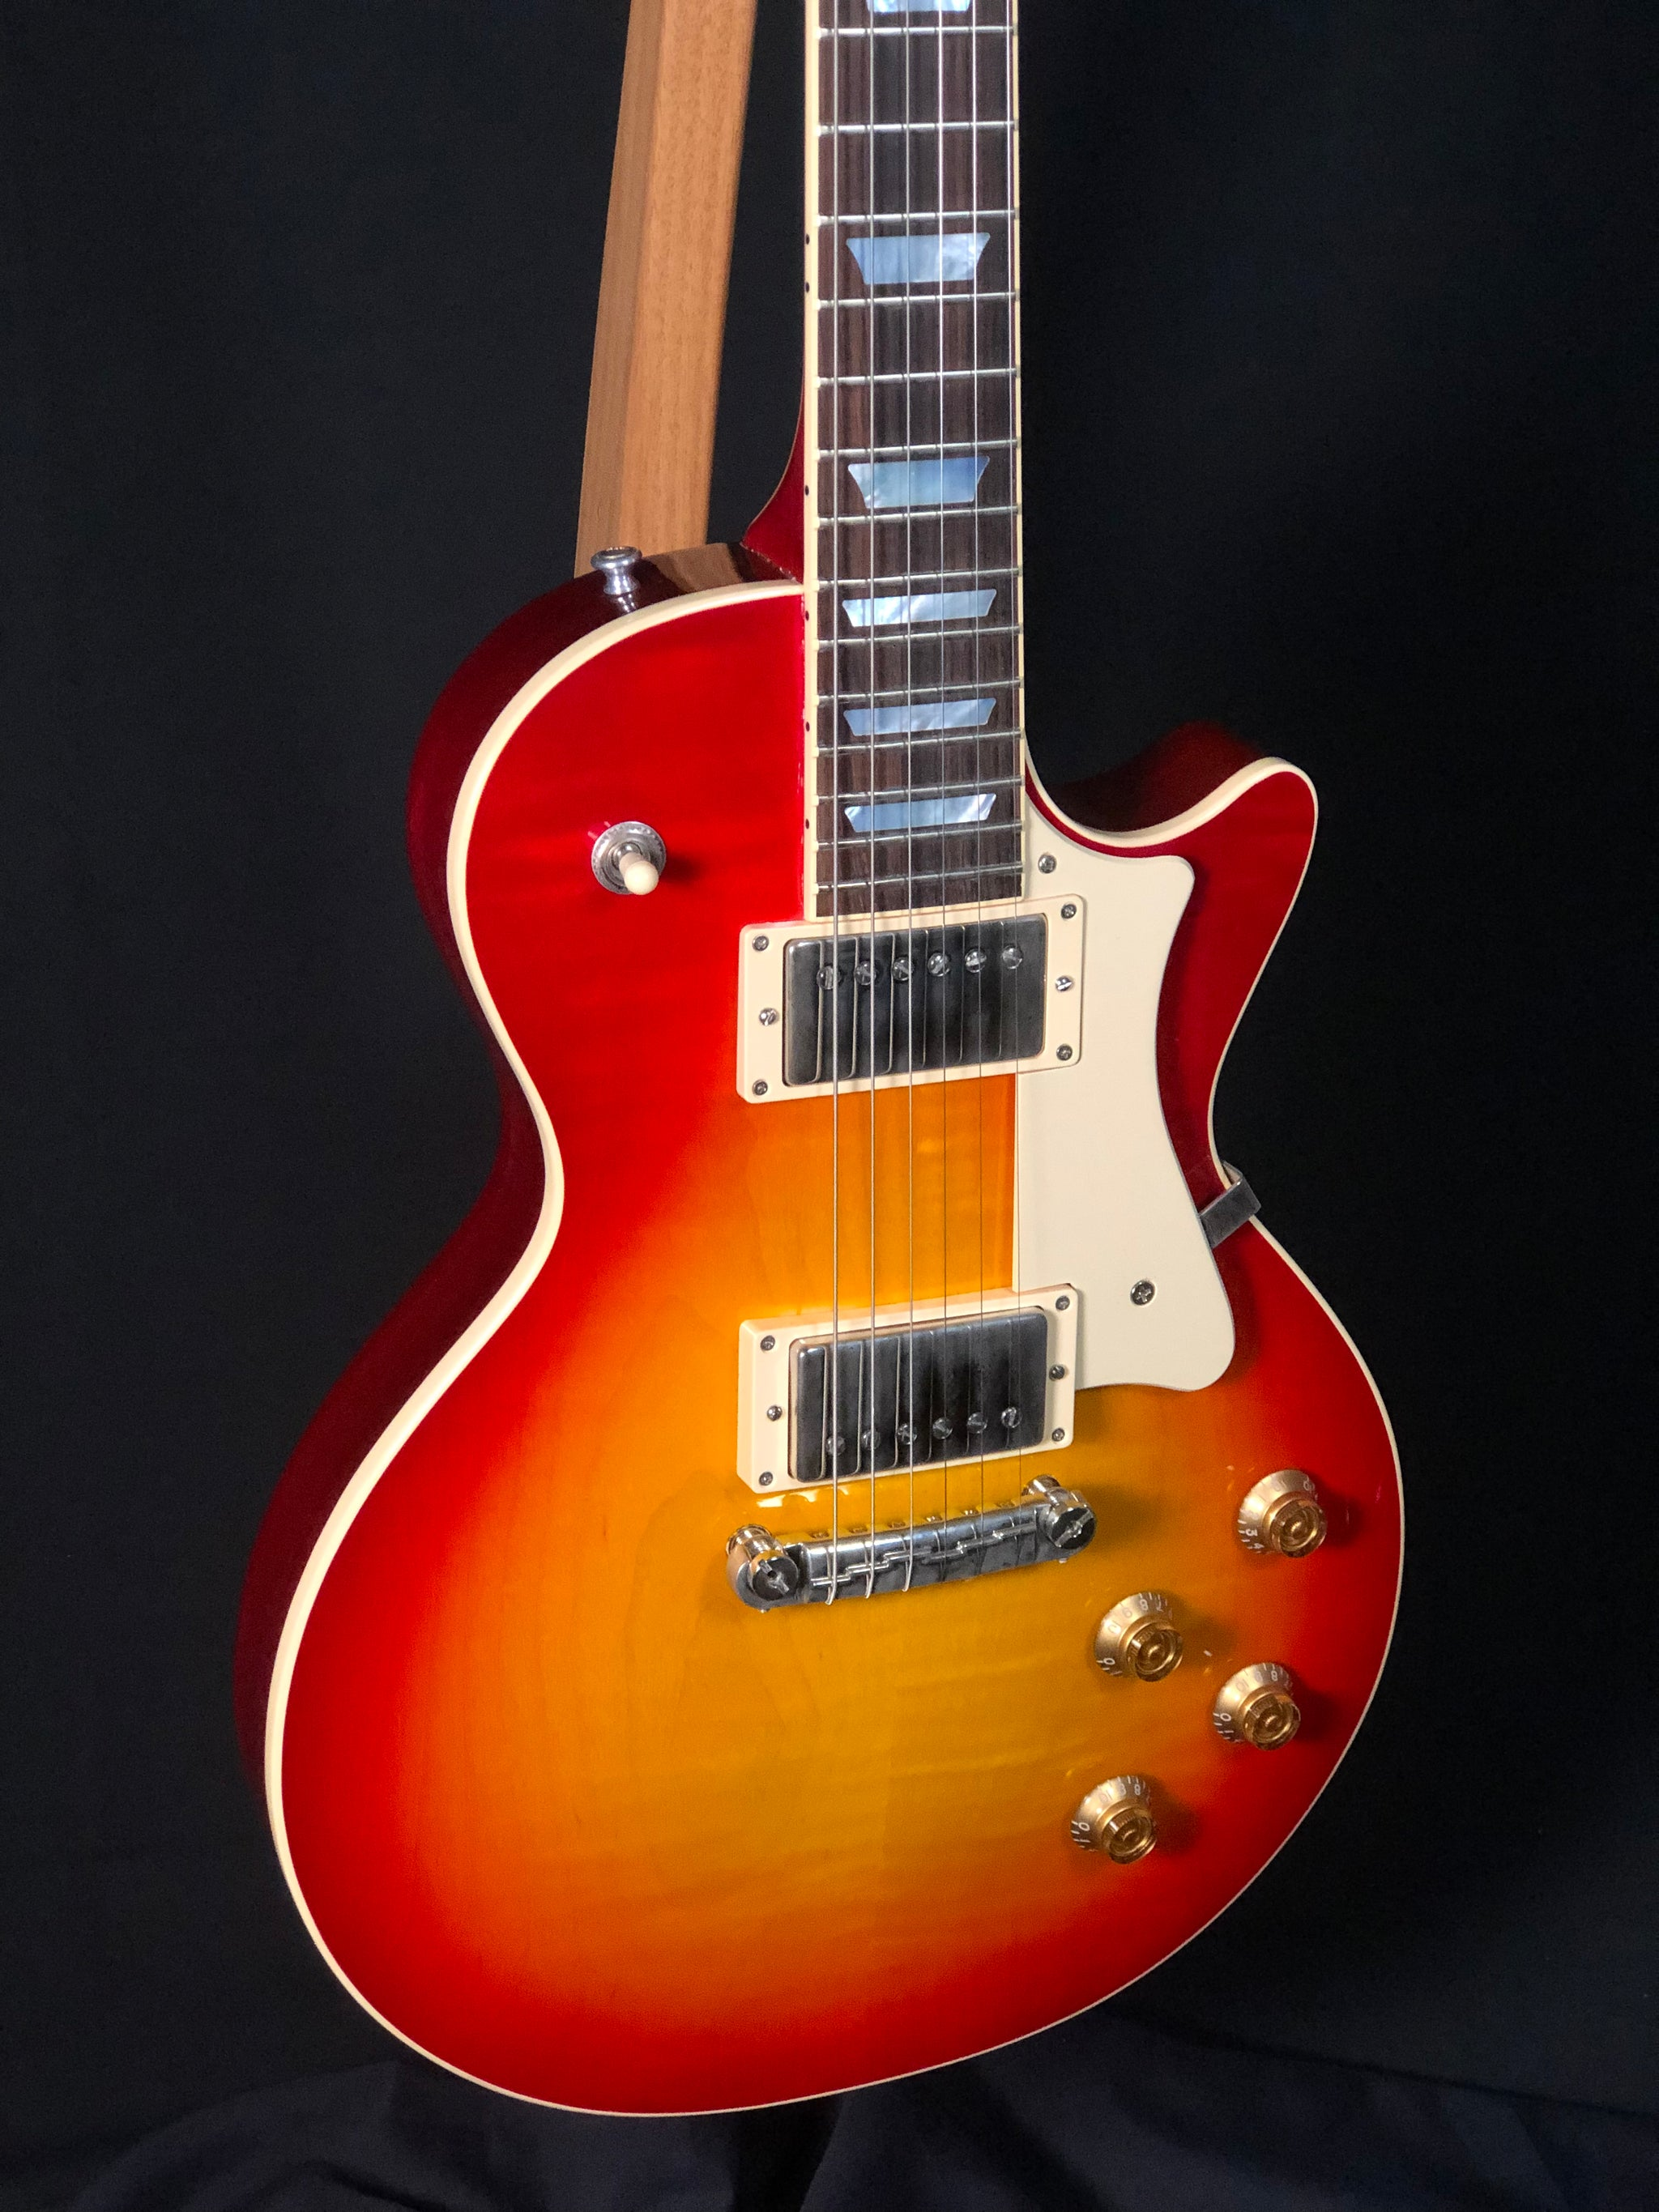 H150 Vintage Cherry Sunburst